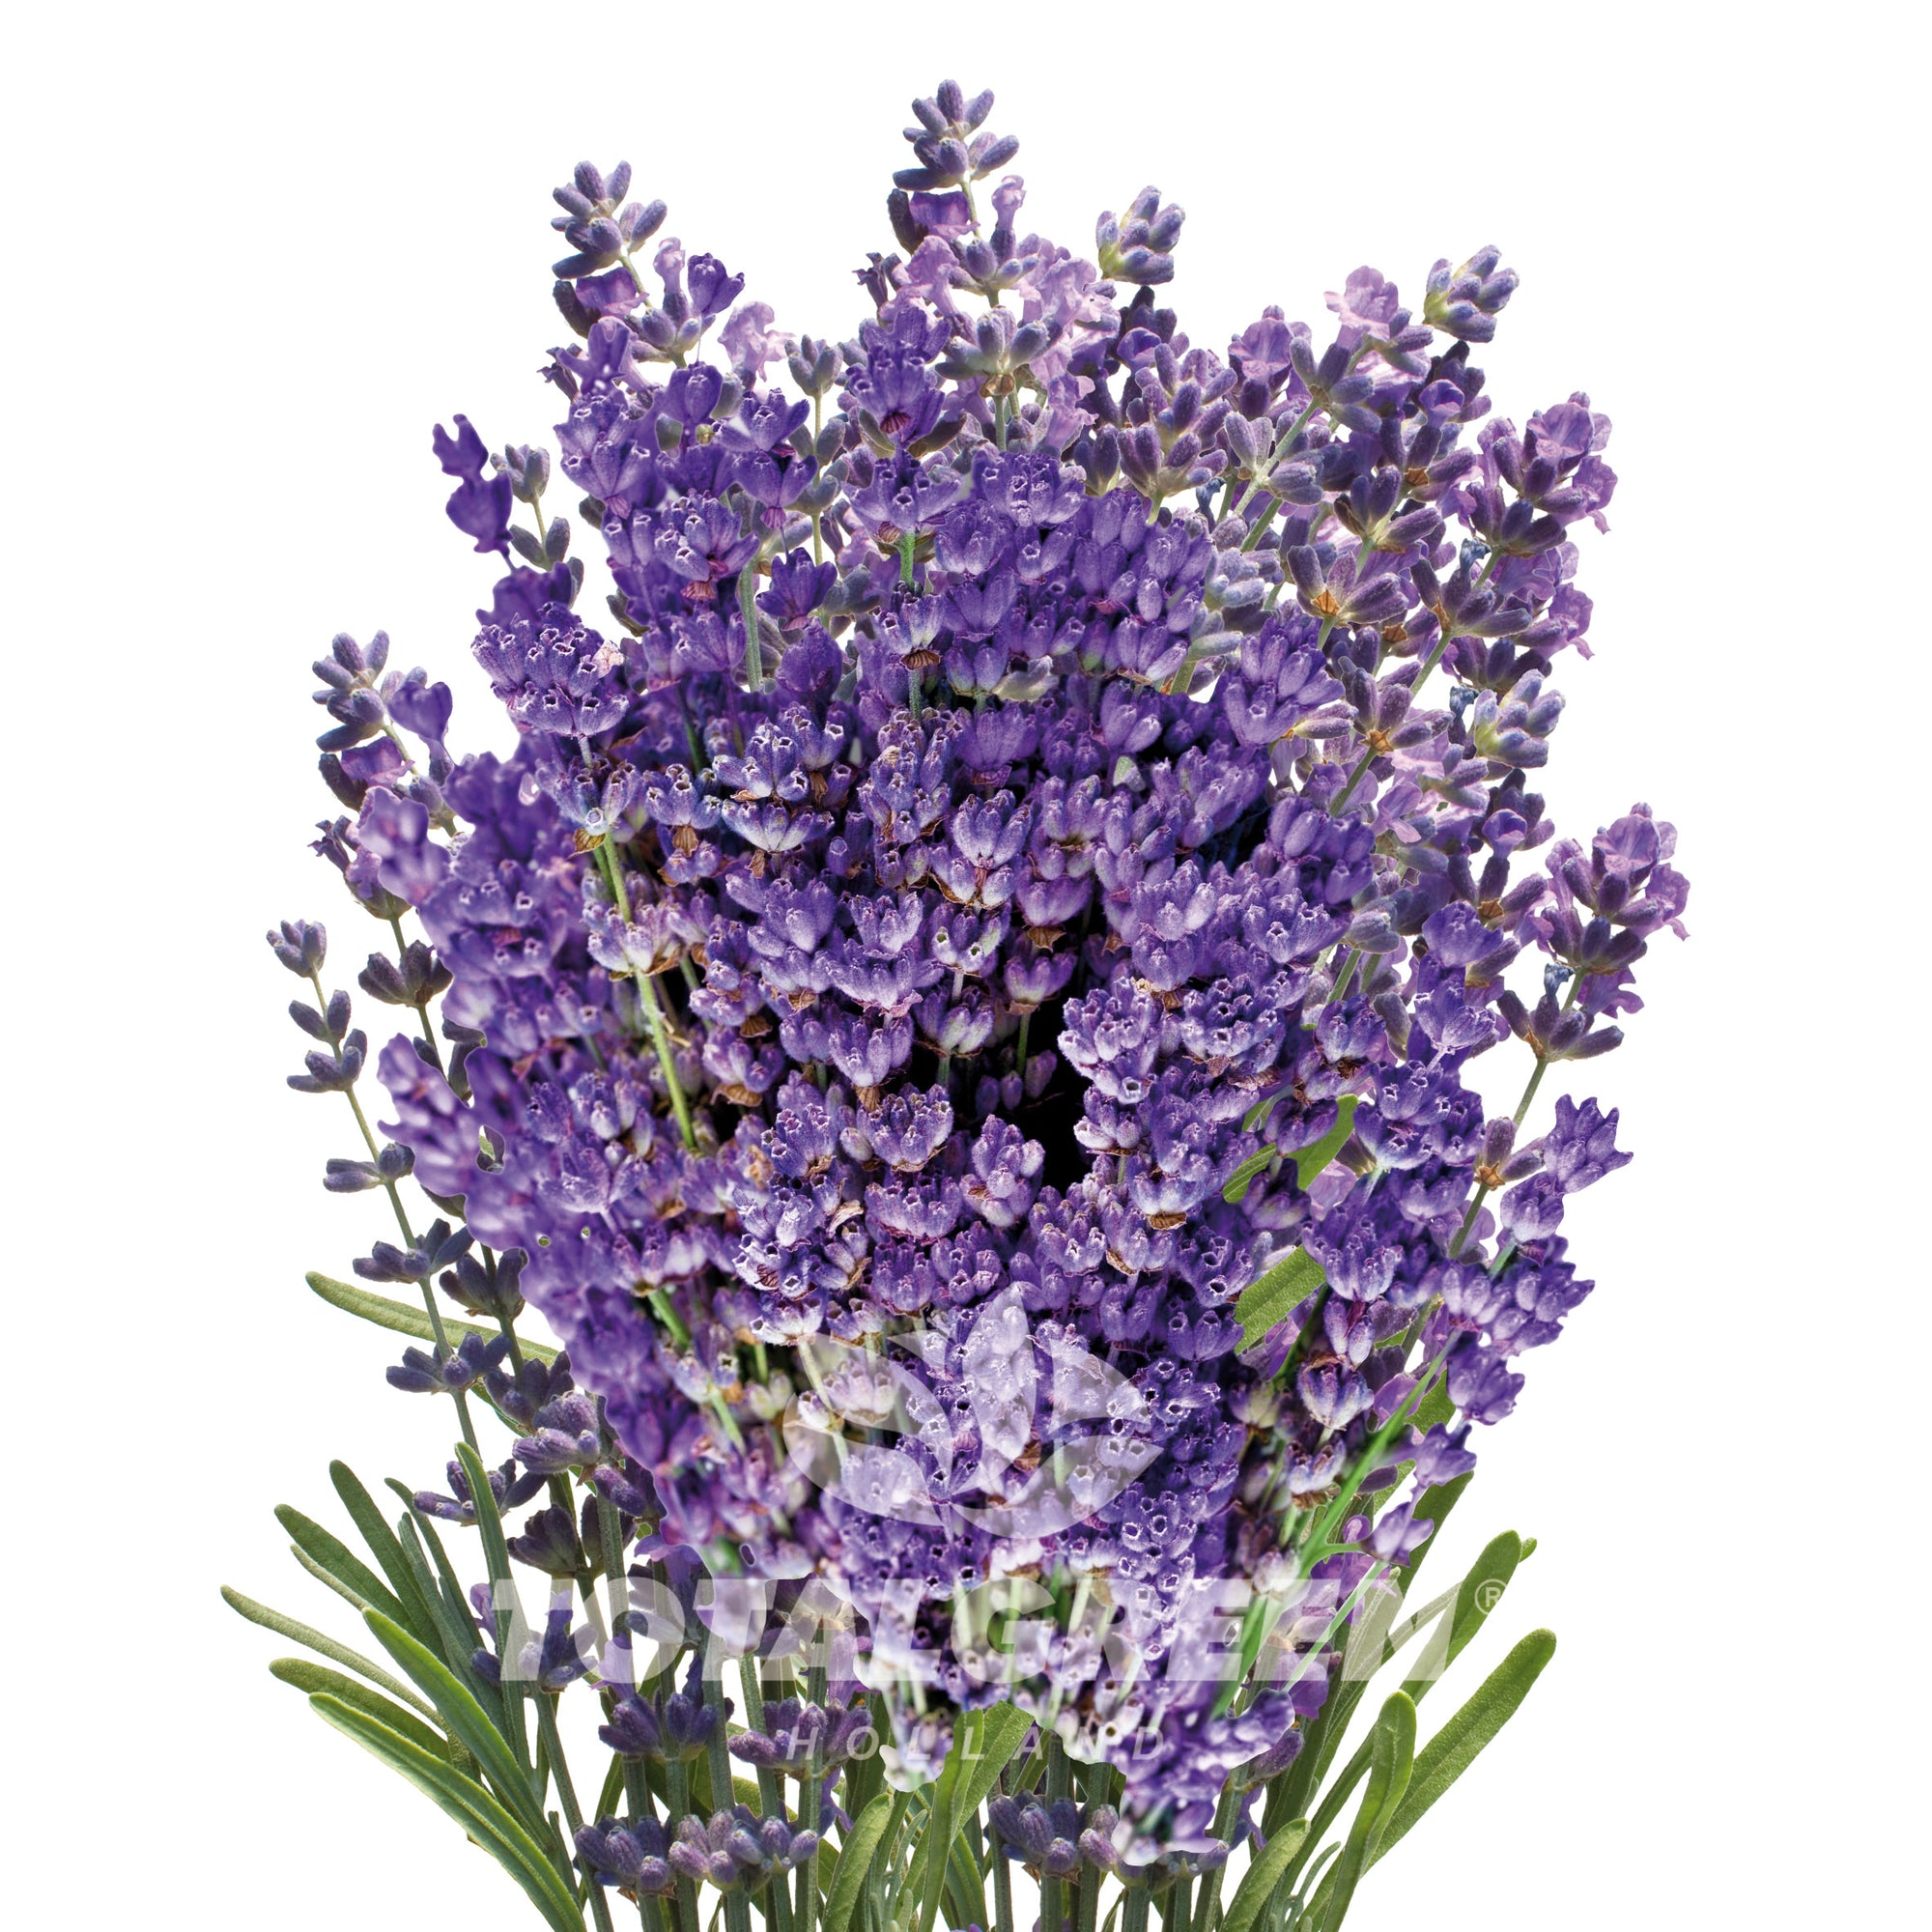 Lavender Grow Kit in Pot